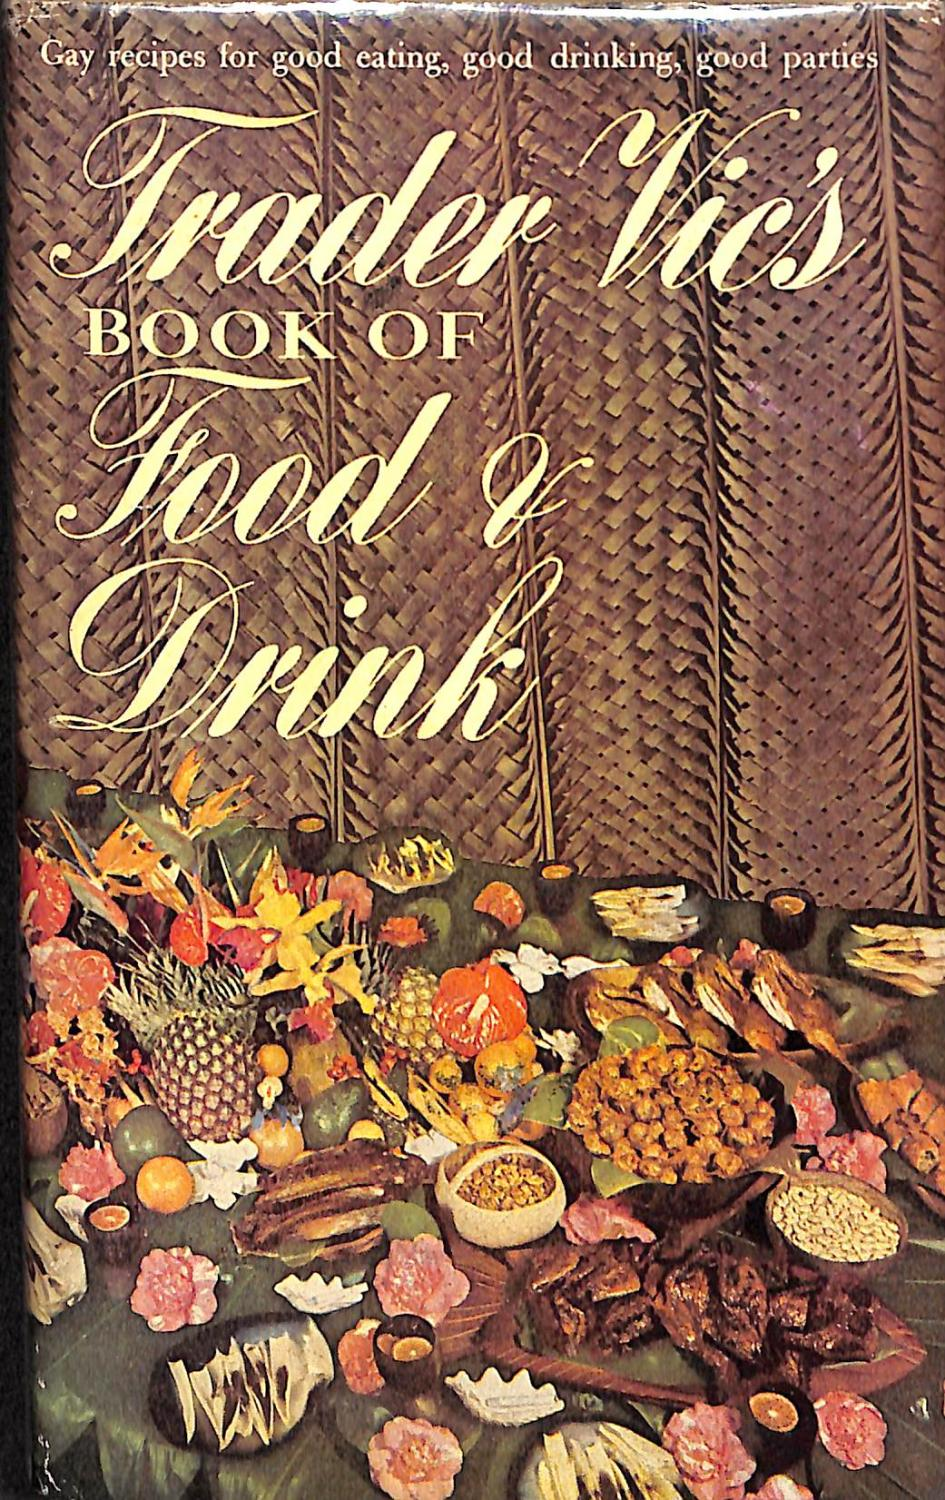 Trader Vic's Book of Food & Drink Trader Vic